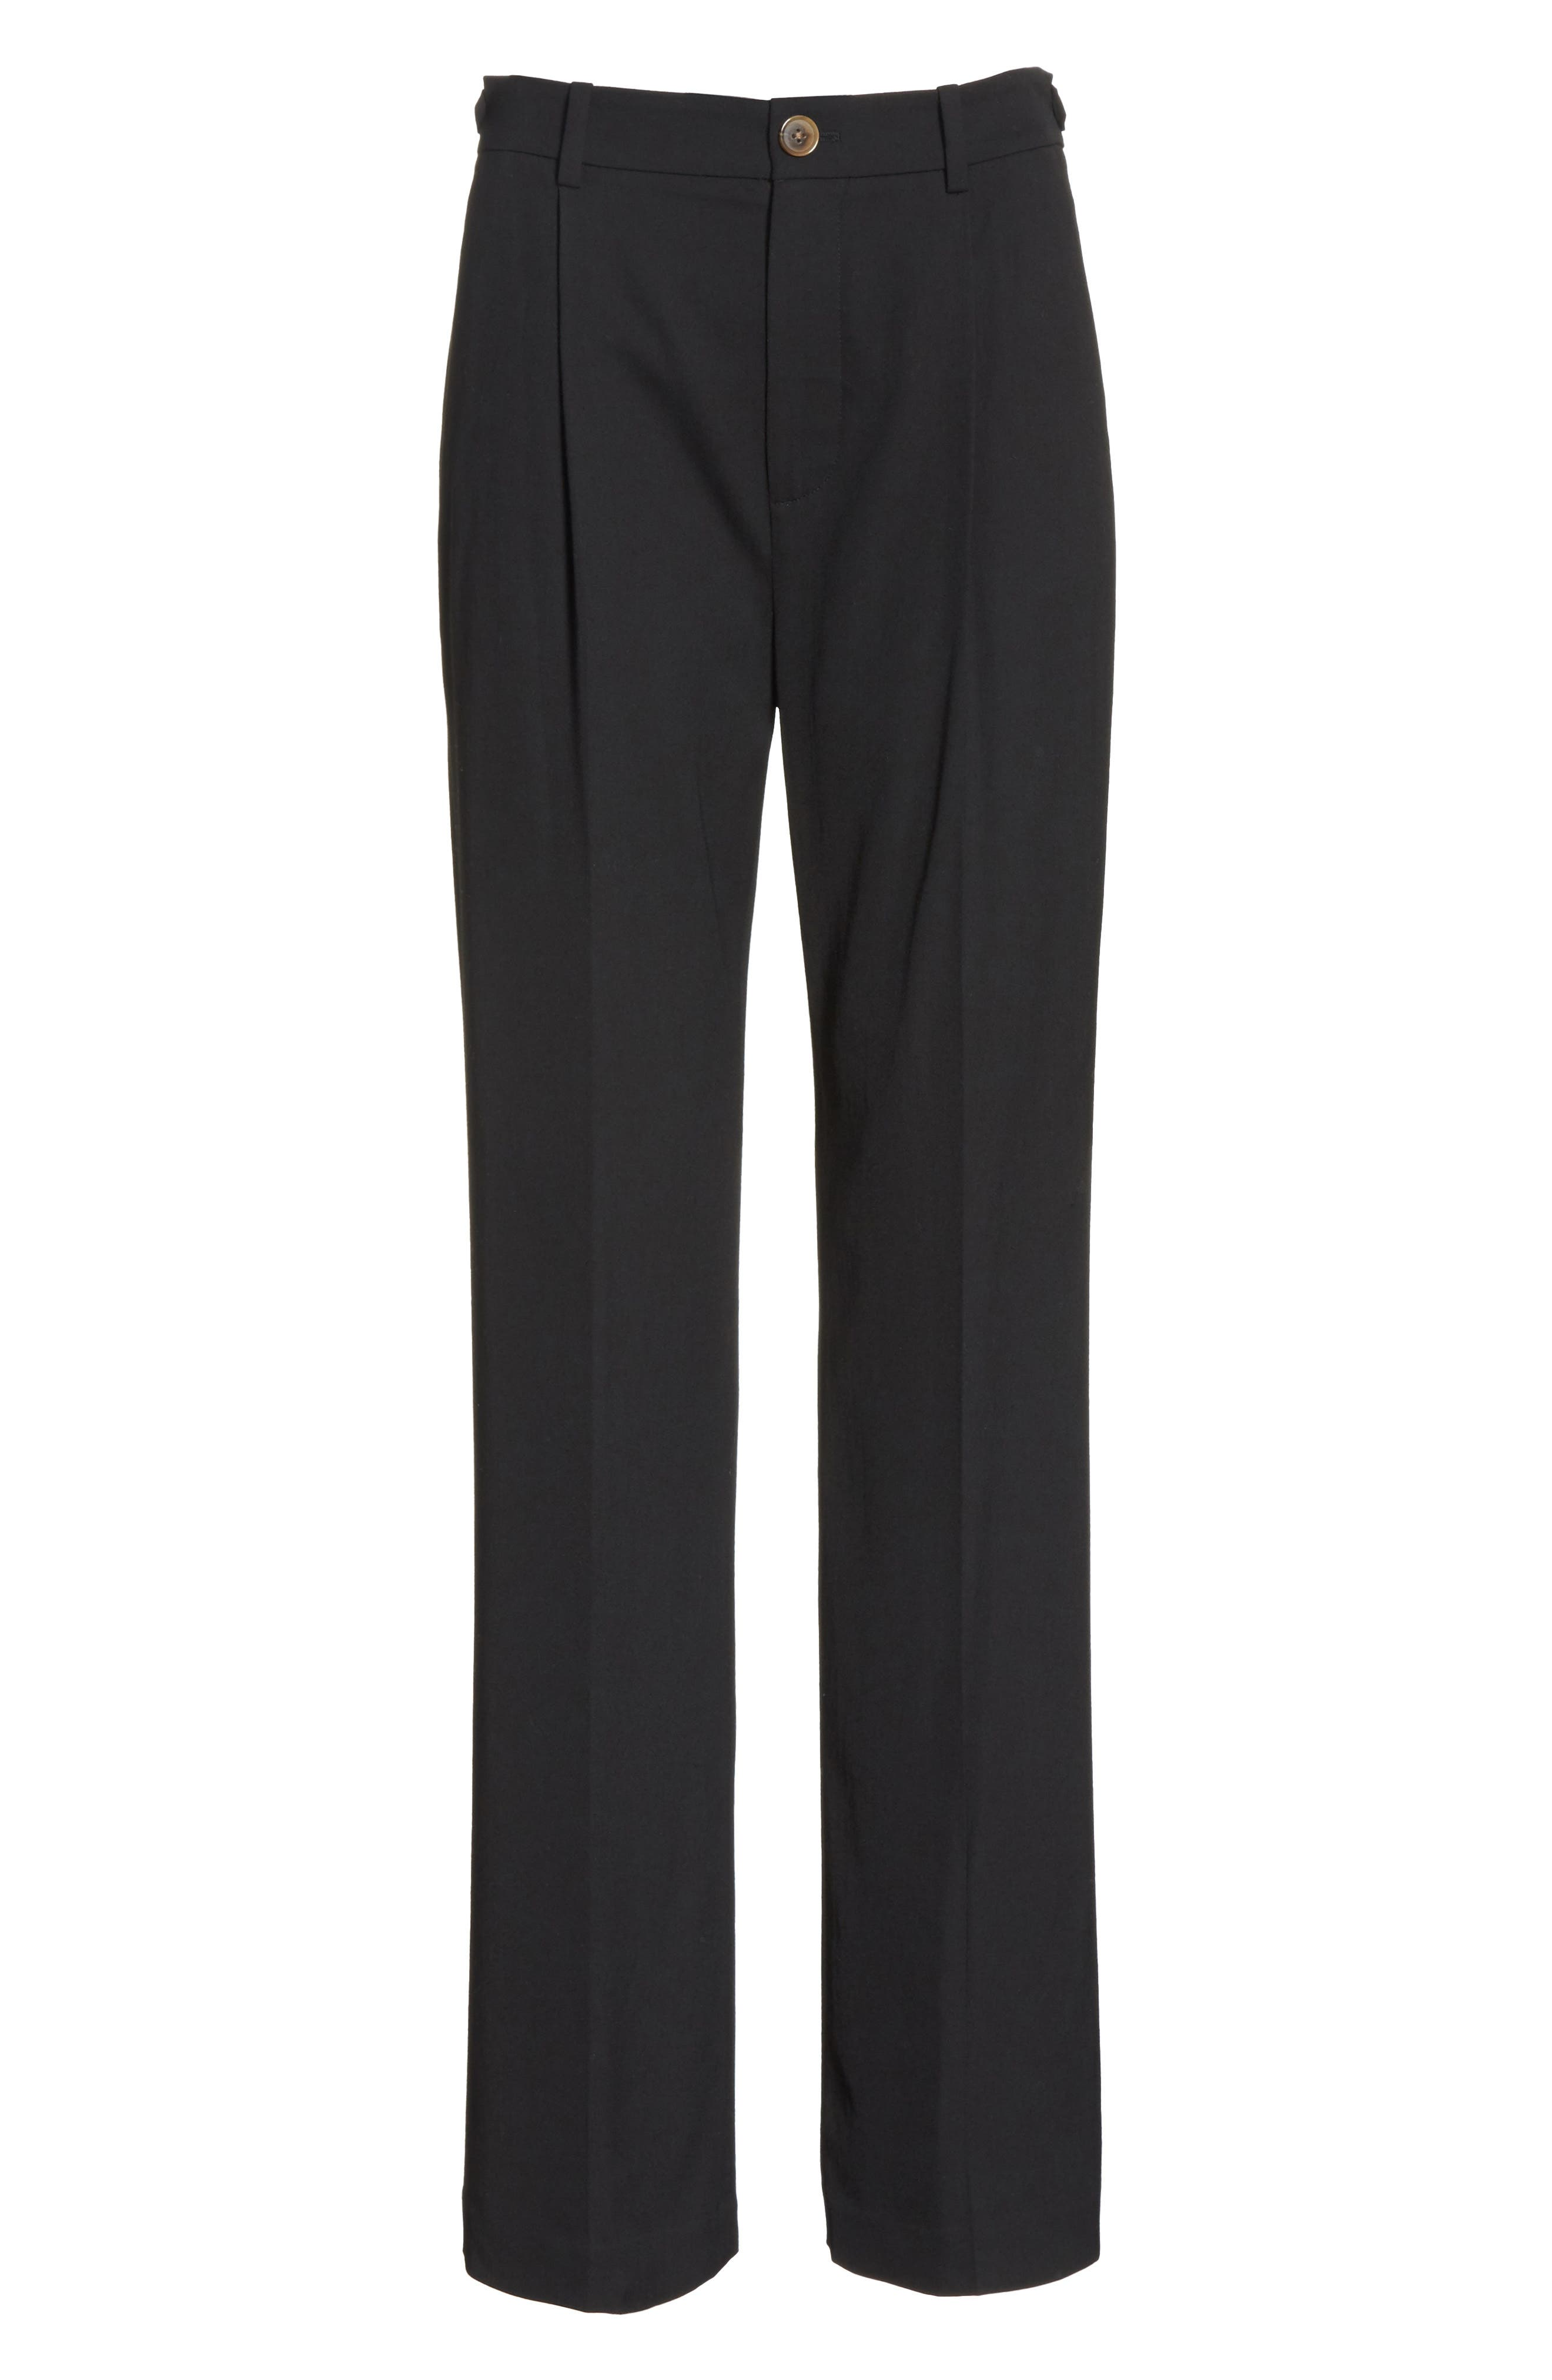 Relaxed Trousers,                             Alternate thumbnail 7, color,                             Black